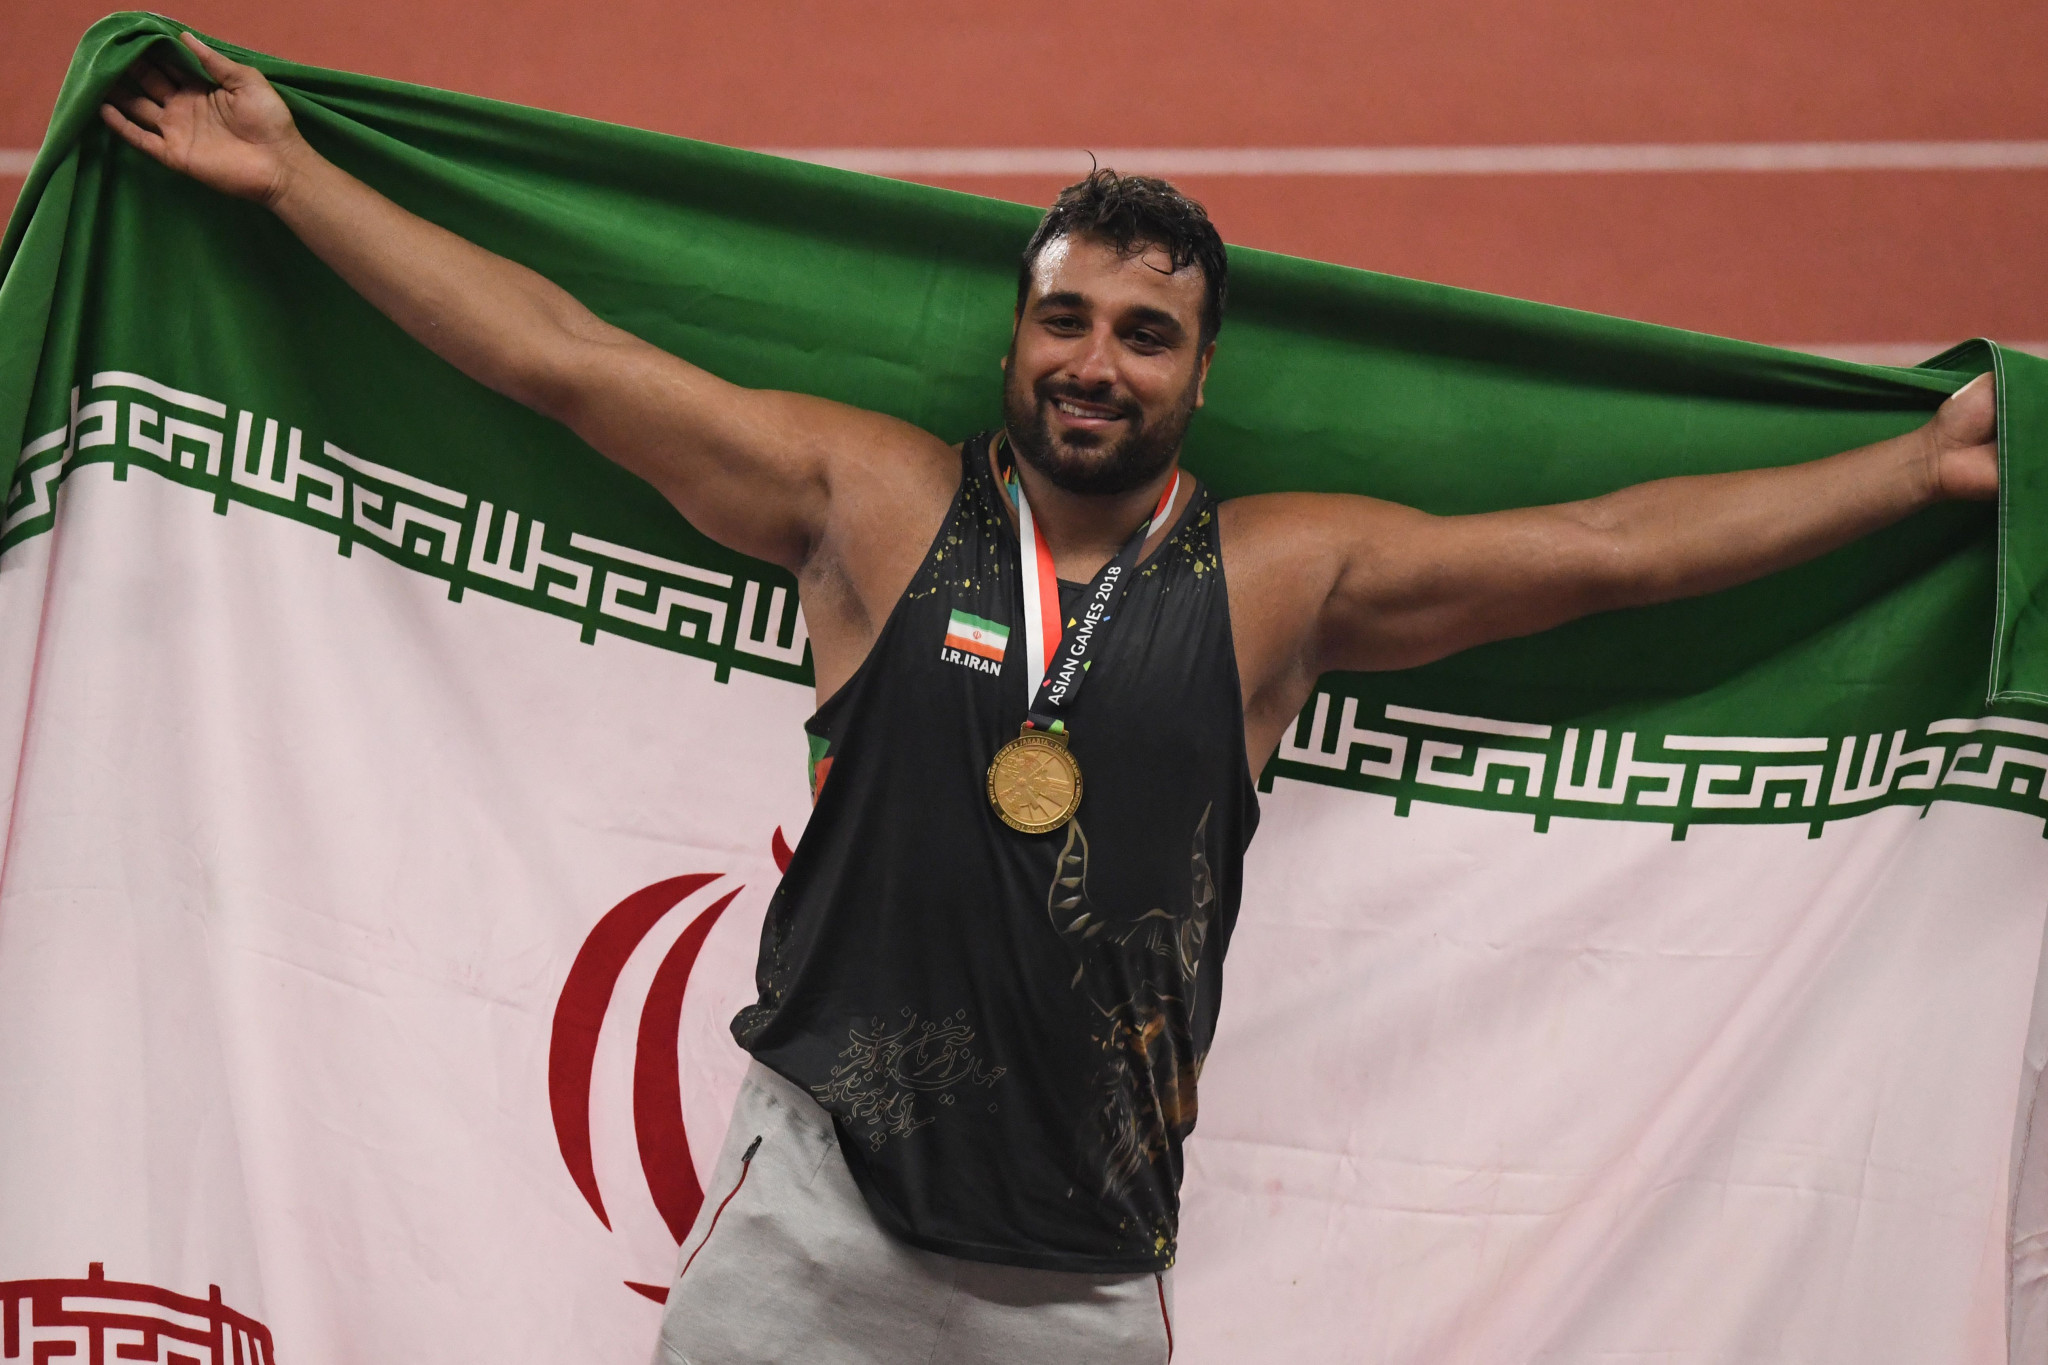 Discus thrower Ehsan Haddadi has also donated memorabilia ©Getty Images